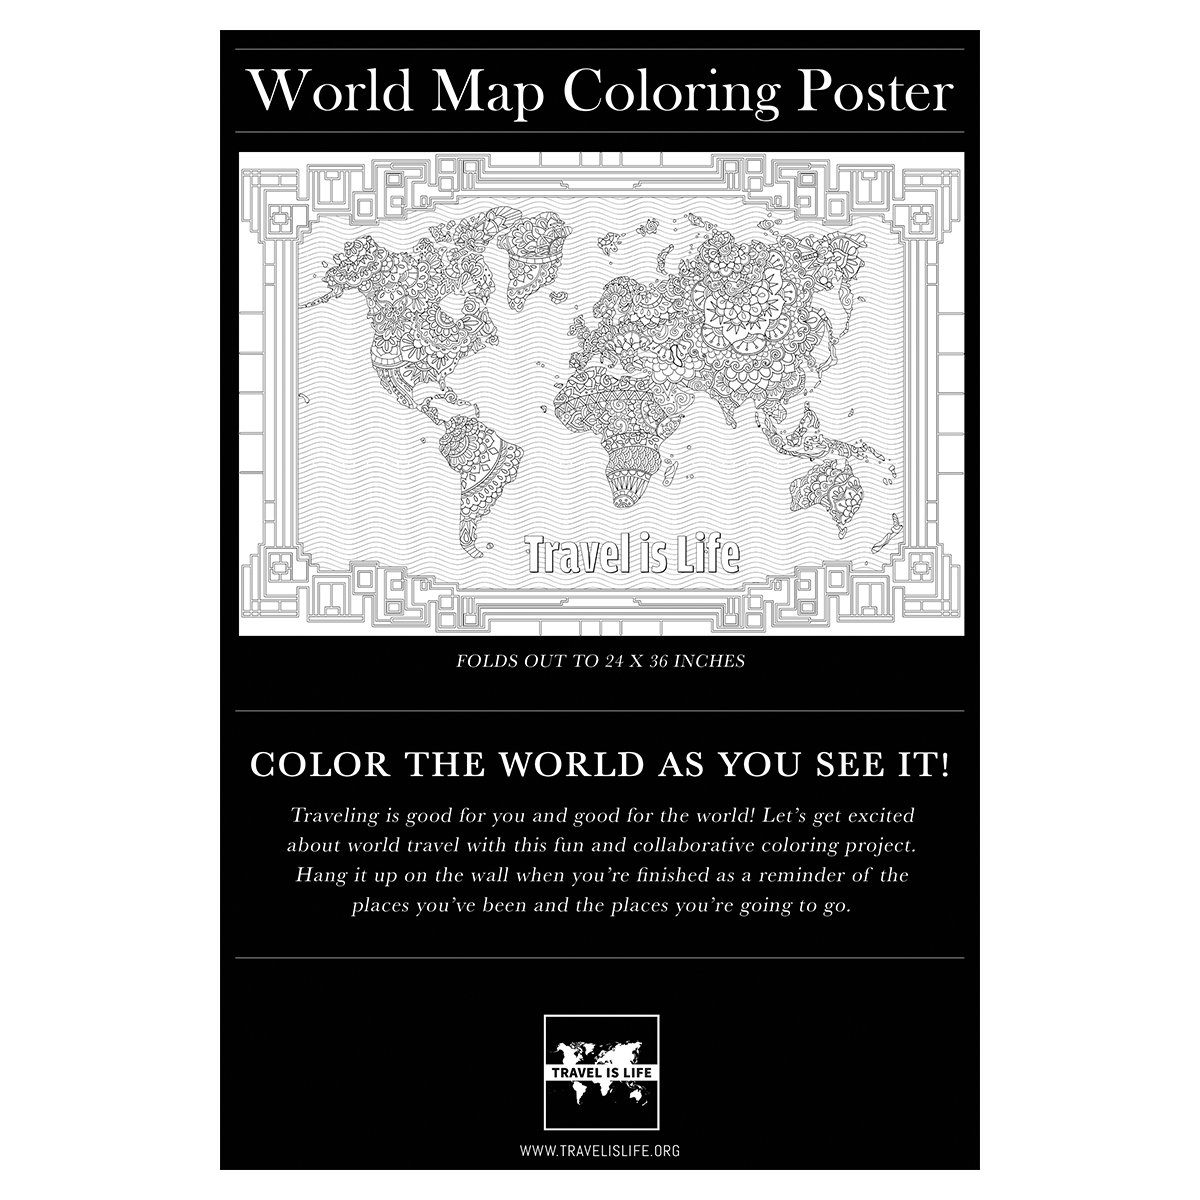 Amazon travel is life world map coloring poster 24 x 36 for amazon travel is life world map coloring poster 24 x 36 for kids adults toys games publicscrutiny Gallery